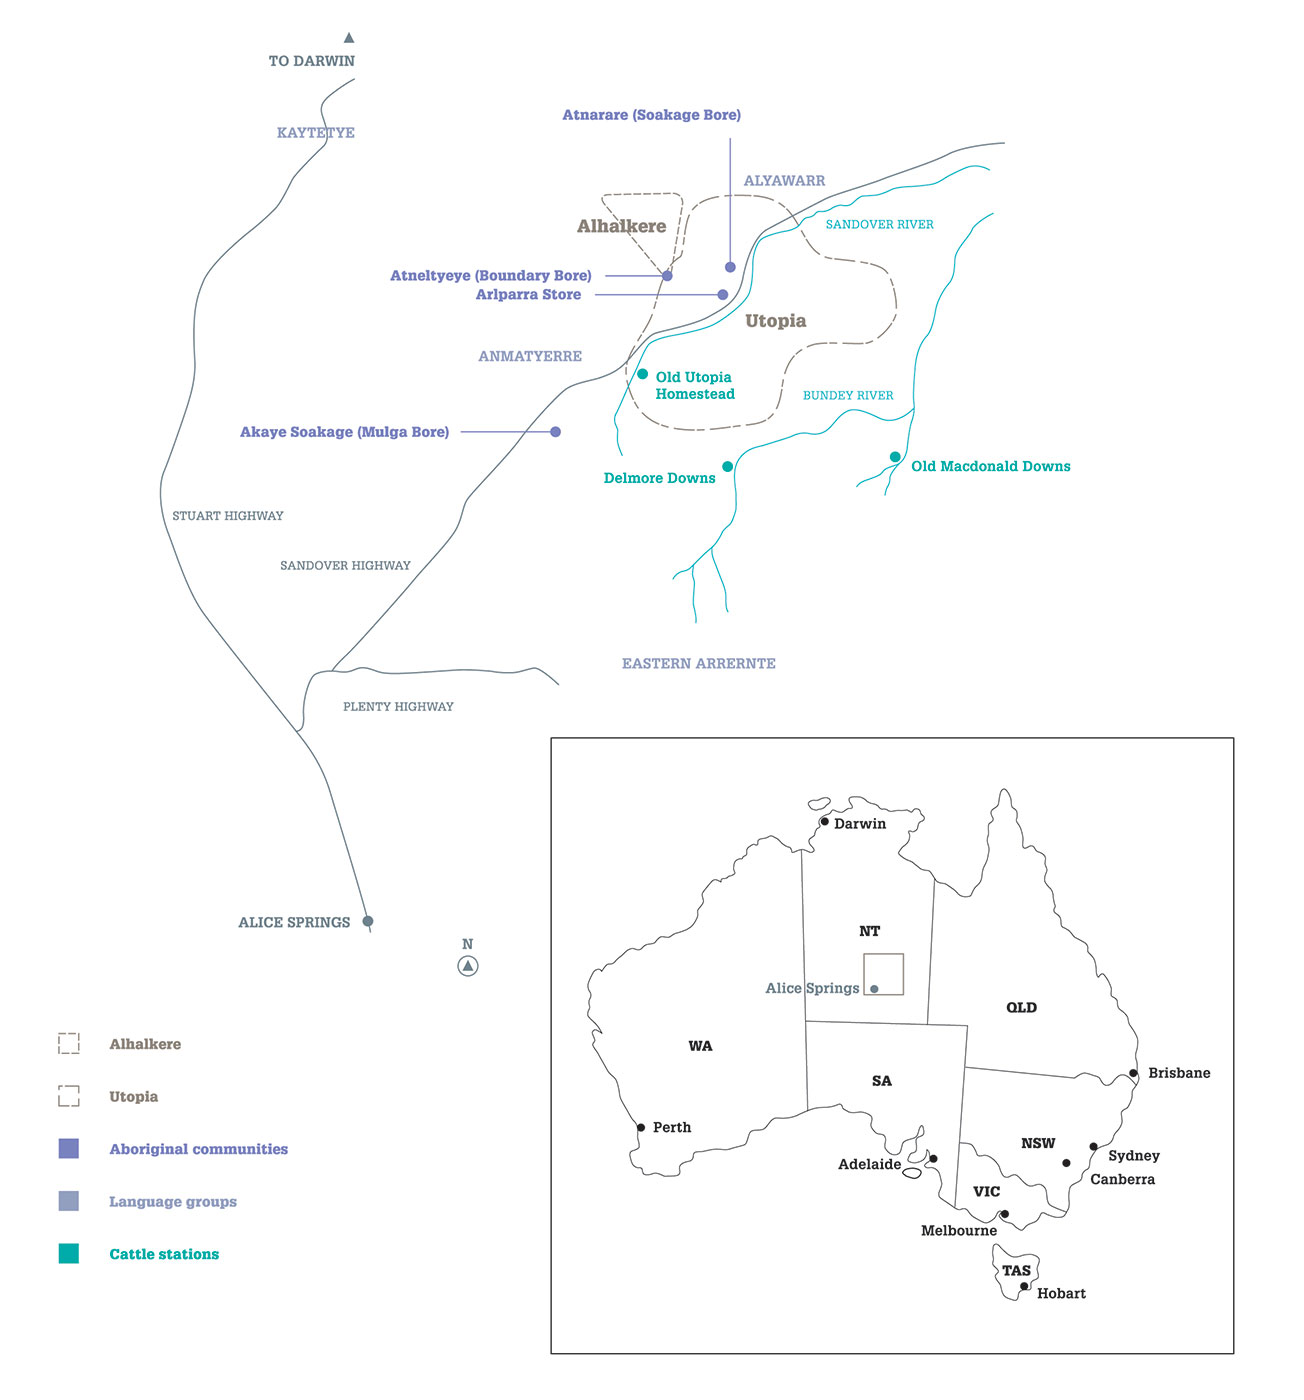 Map of Australia and the Northern Territory showing areas of Utopia and Alhalkere.